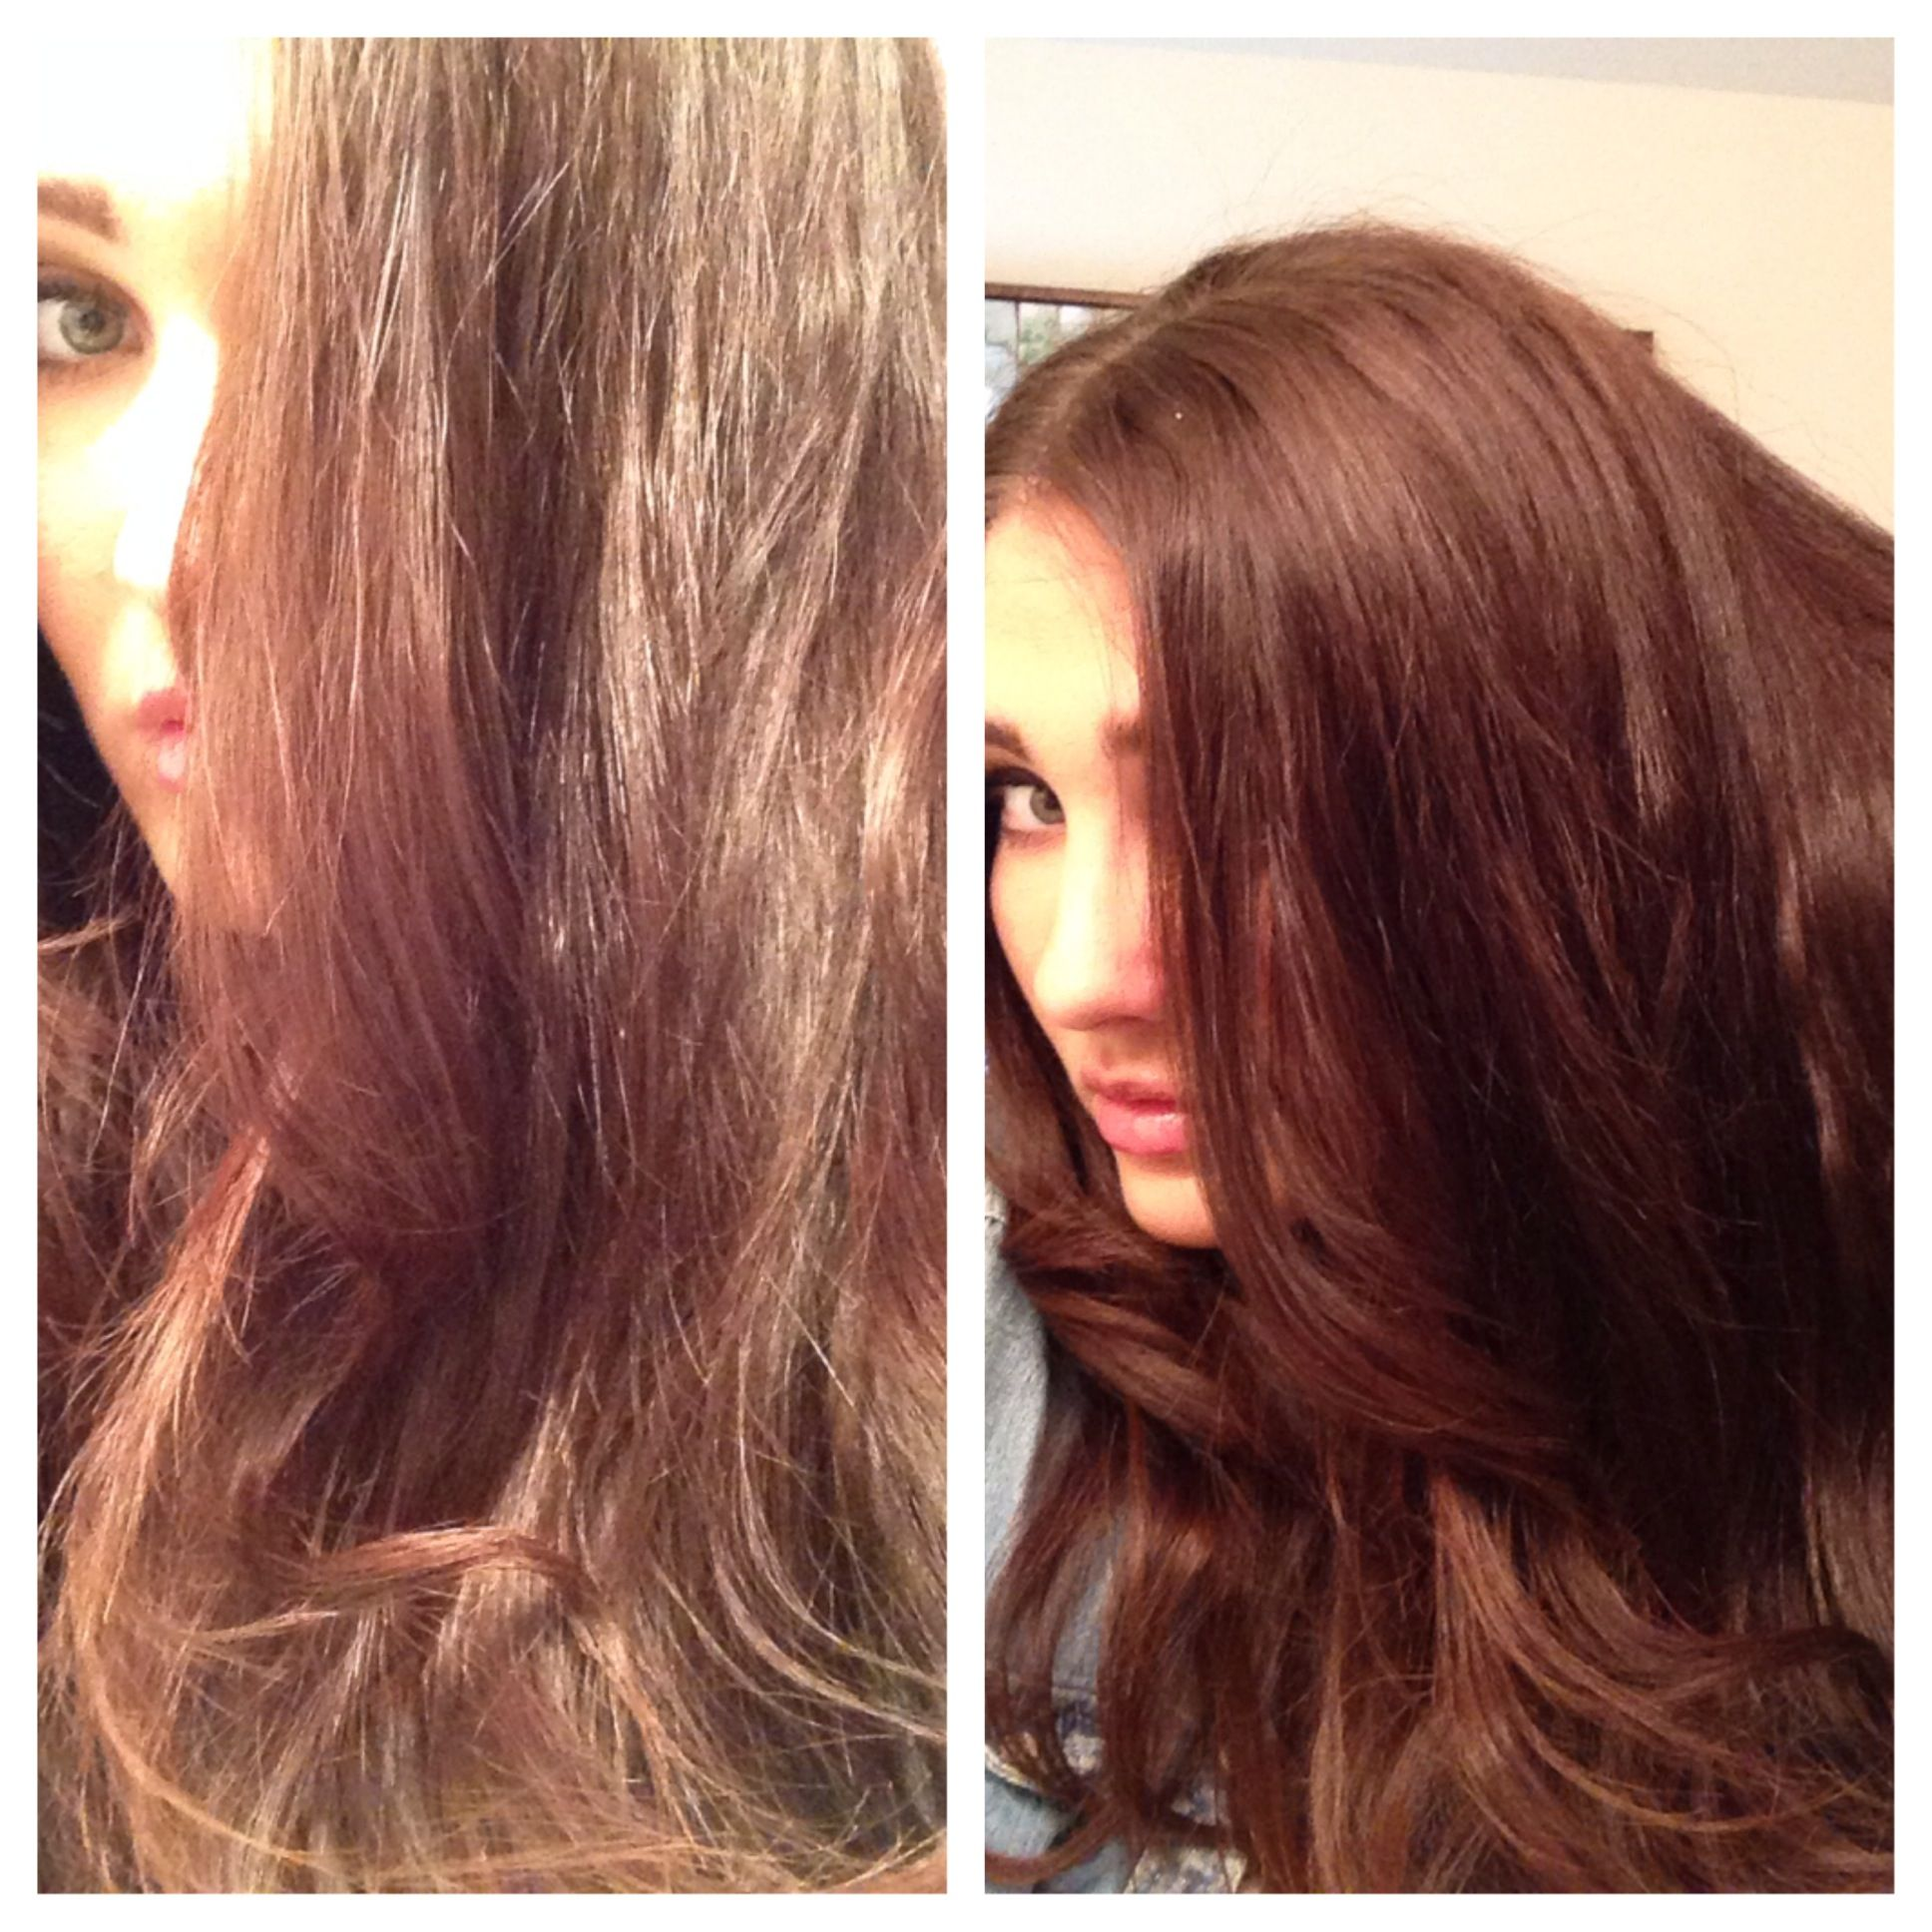 How To Color Your Hair With Henna Non Toxic Hair Color